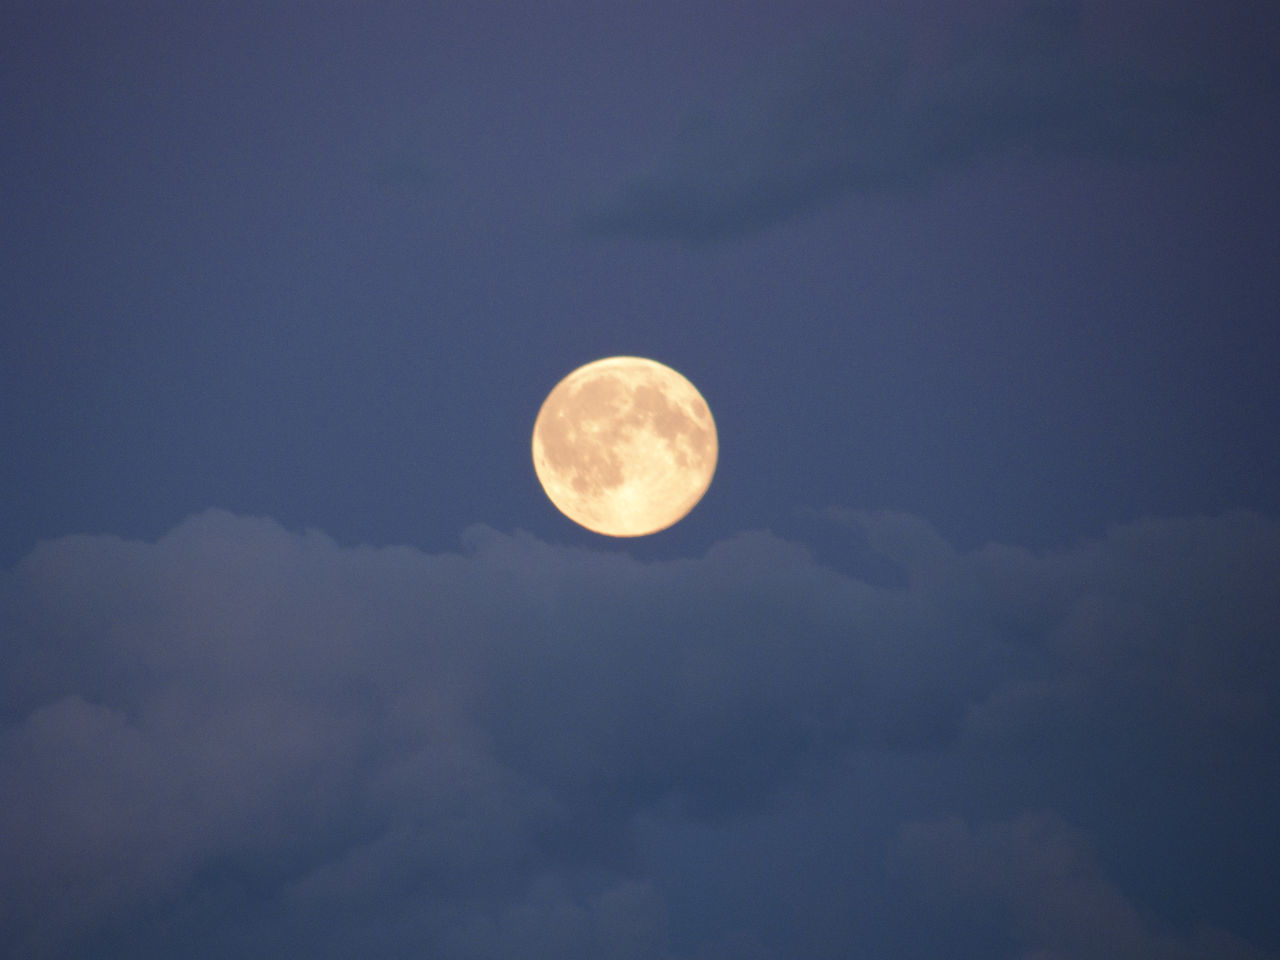 moon, beauty in nature, nature, scenics, sky, tranquility, astronomy, planetary moon, circle, tranquil scene, idyllic, sky only, majestic, moon surface, cloud - sky, low angle view, outdoors, night, no people, space exploration, half moon, space